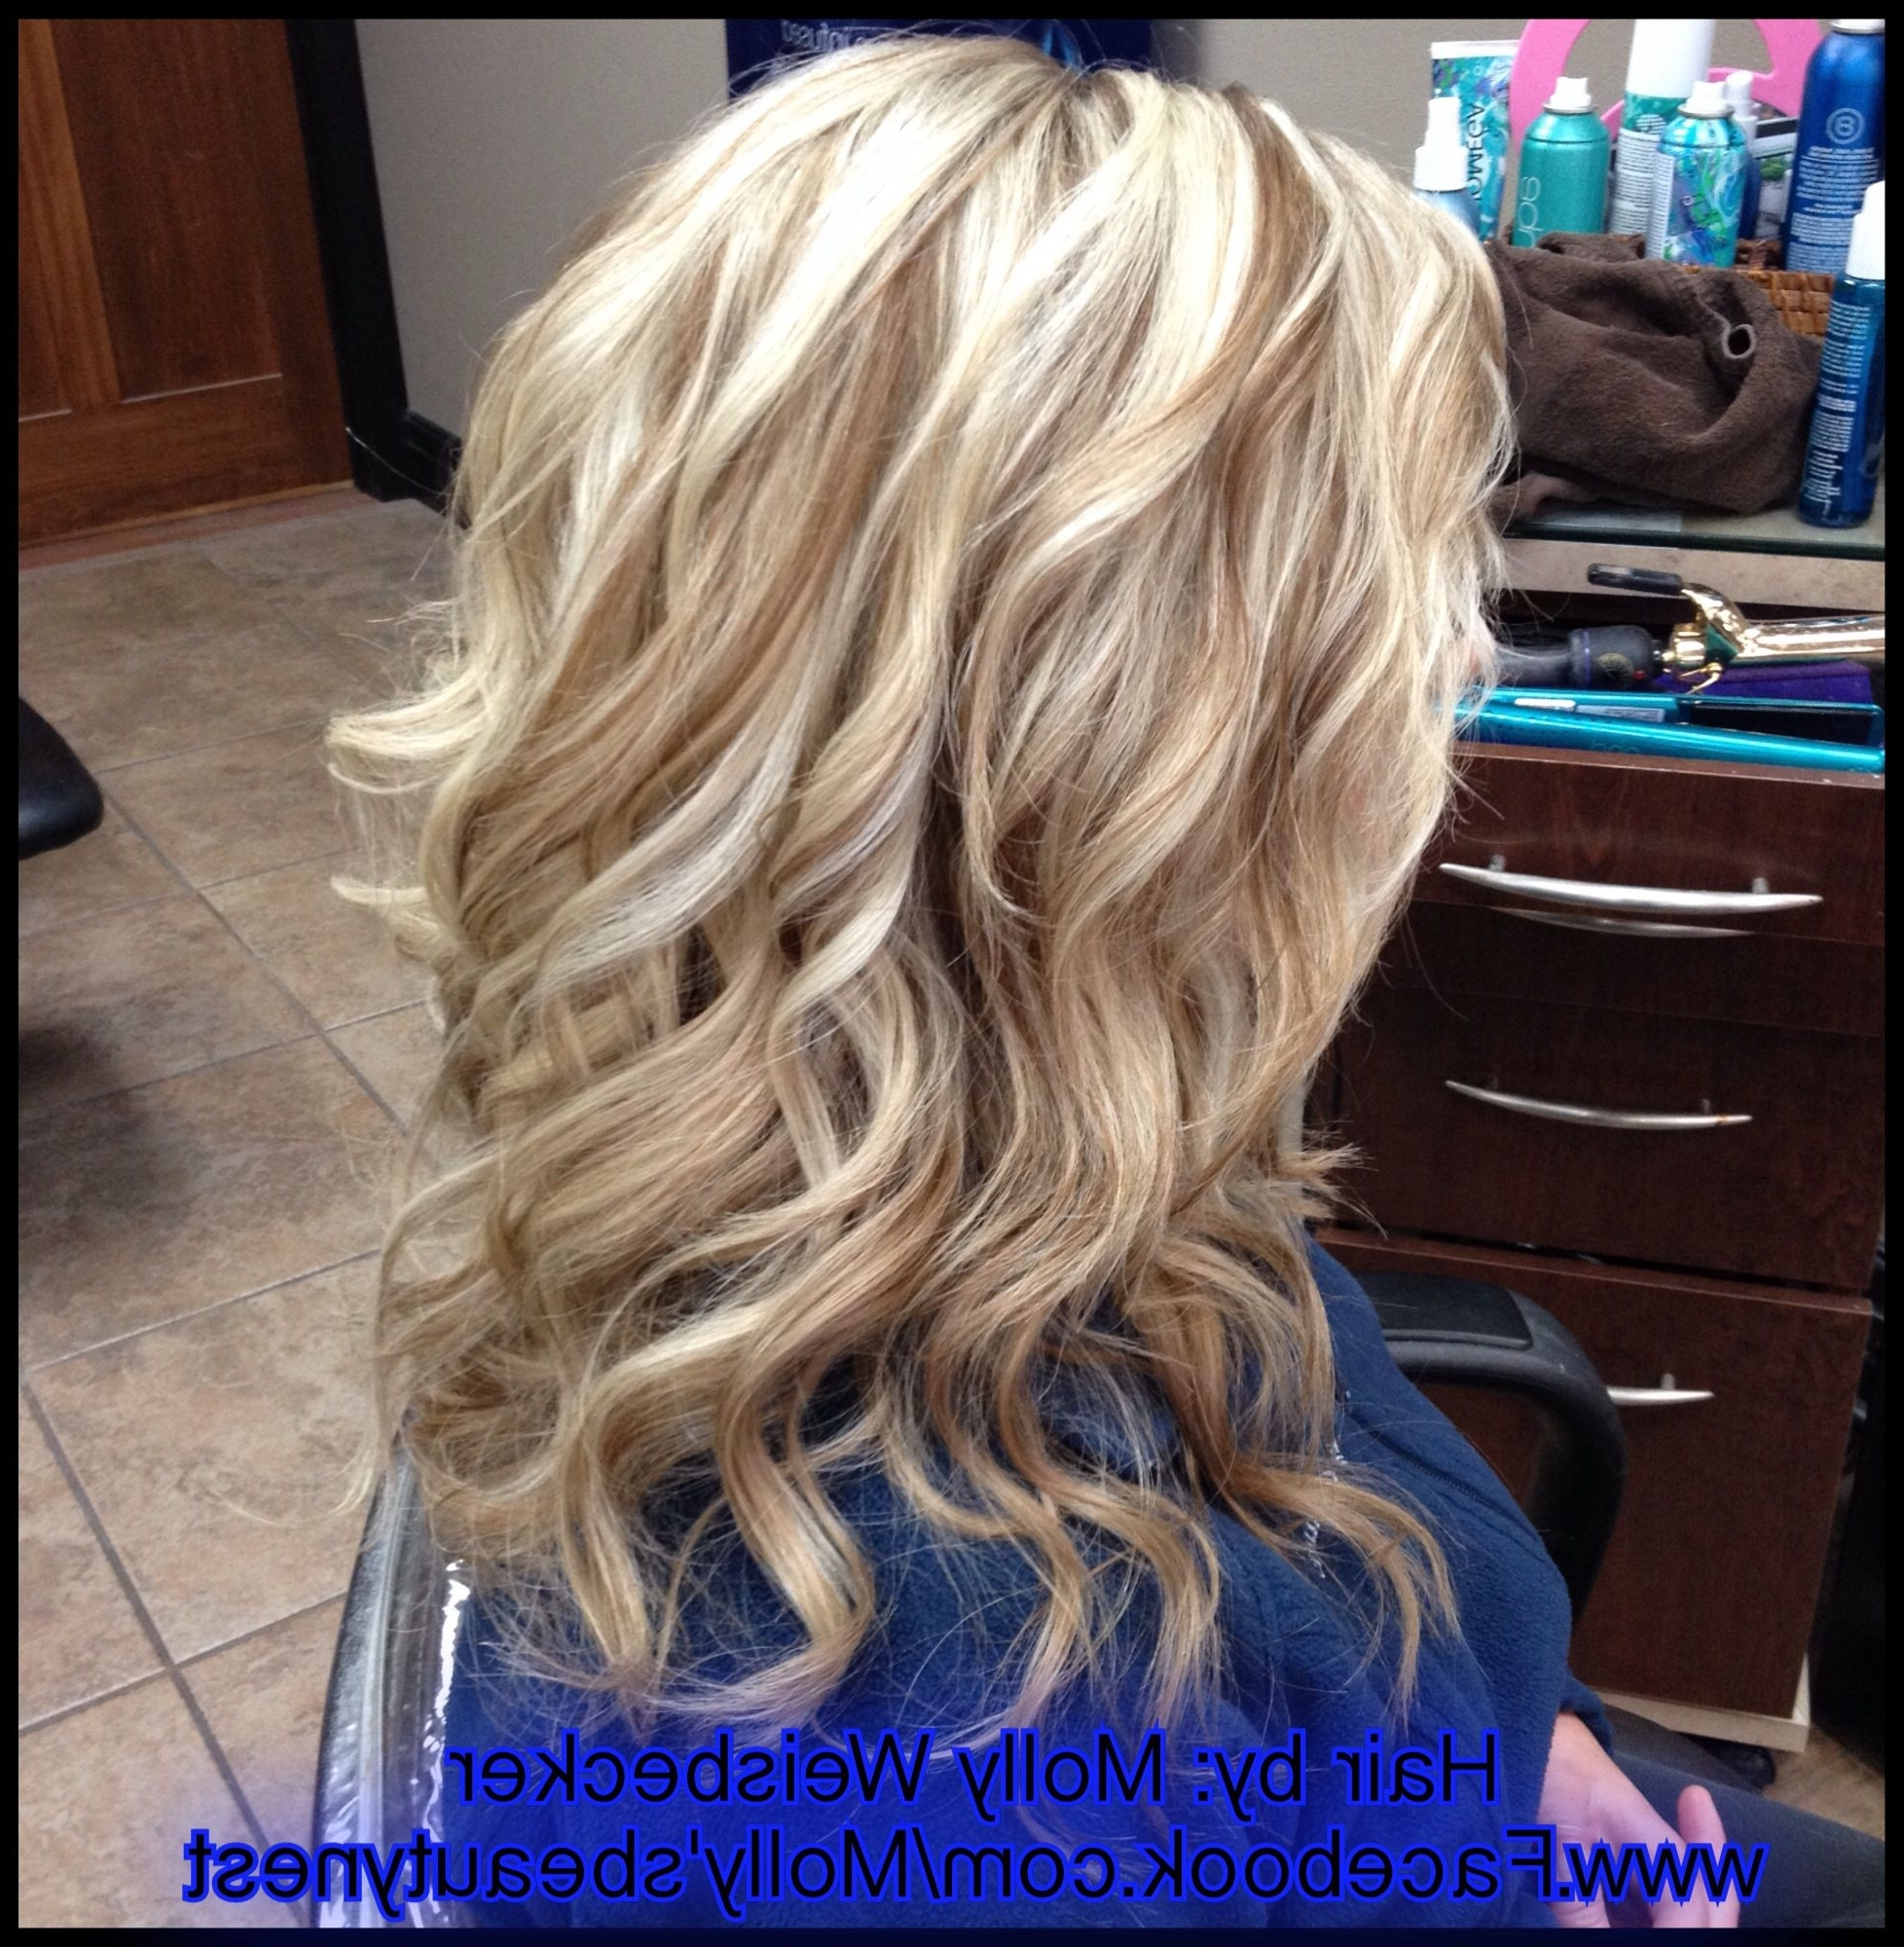 2020 Popular Light Golden Blonde With Platinum Highlights